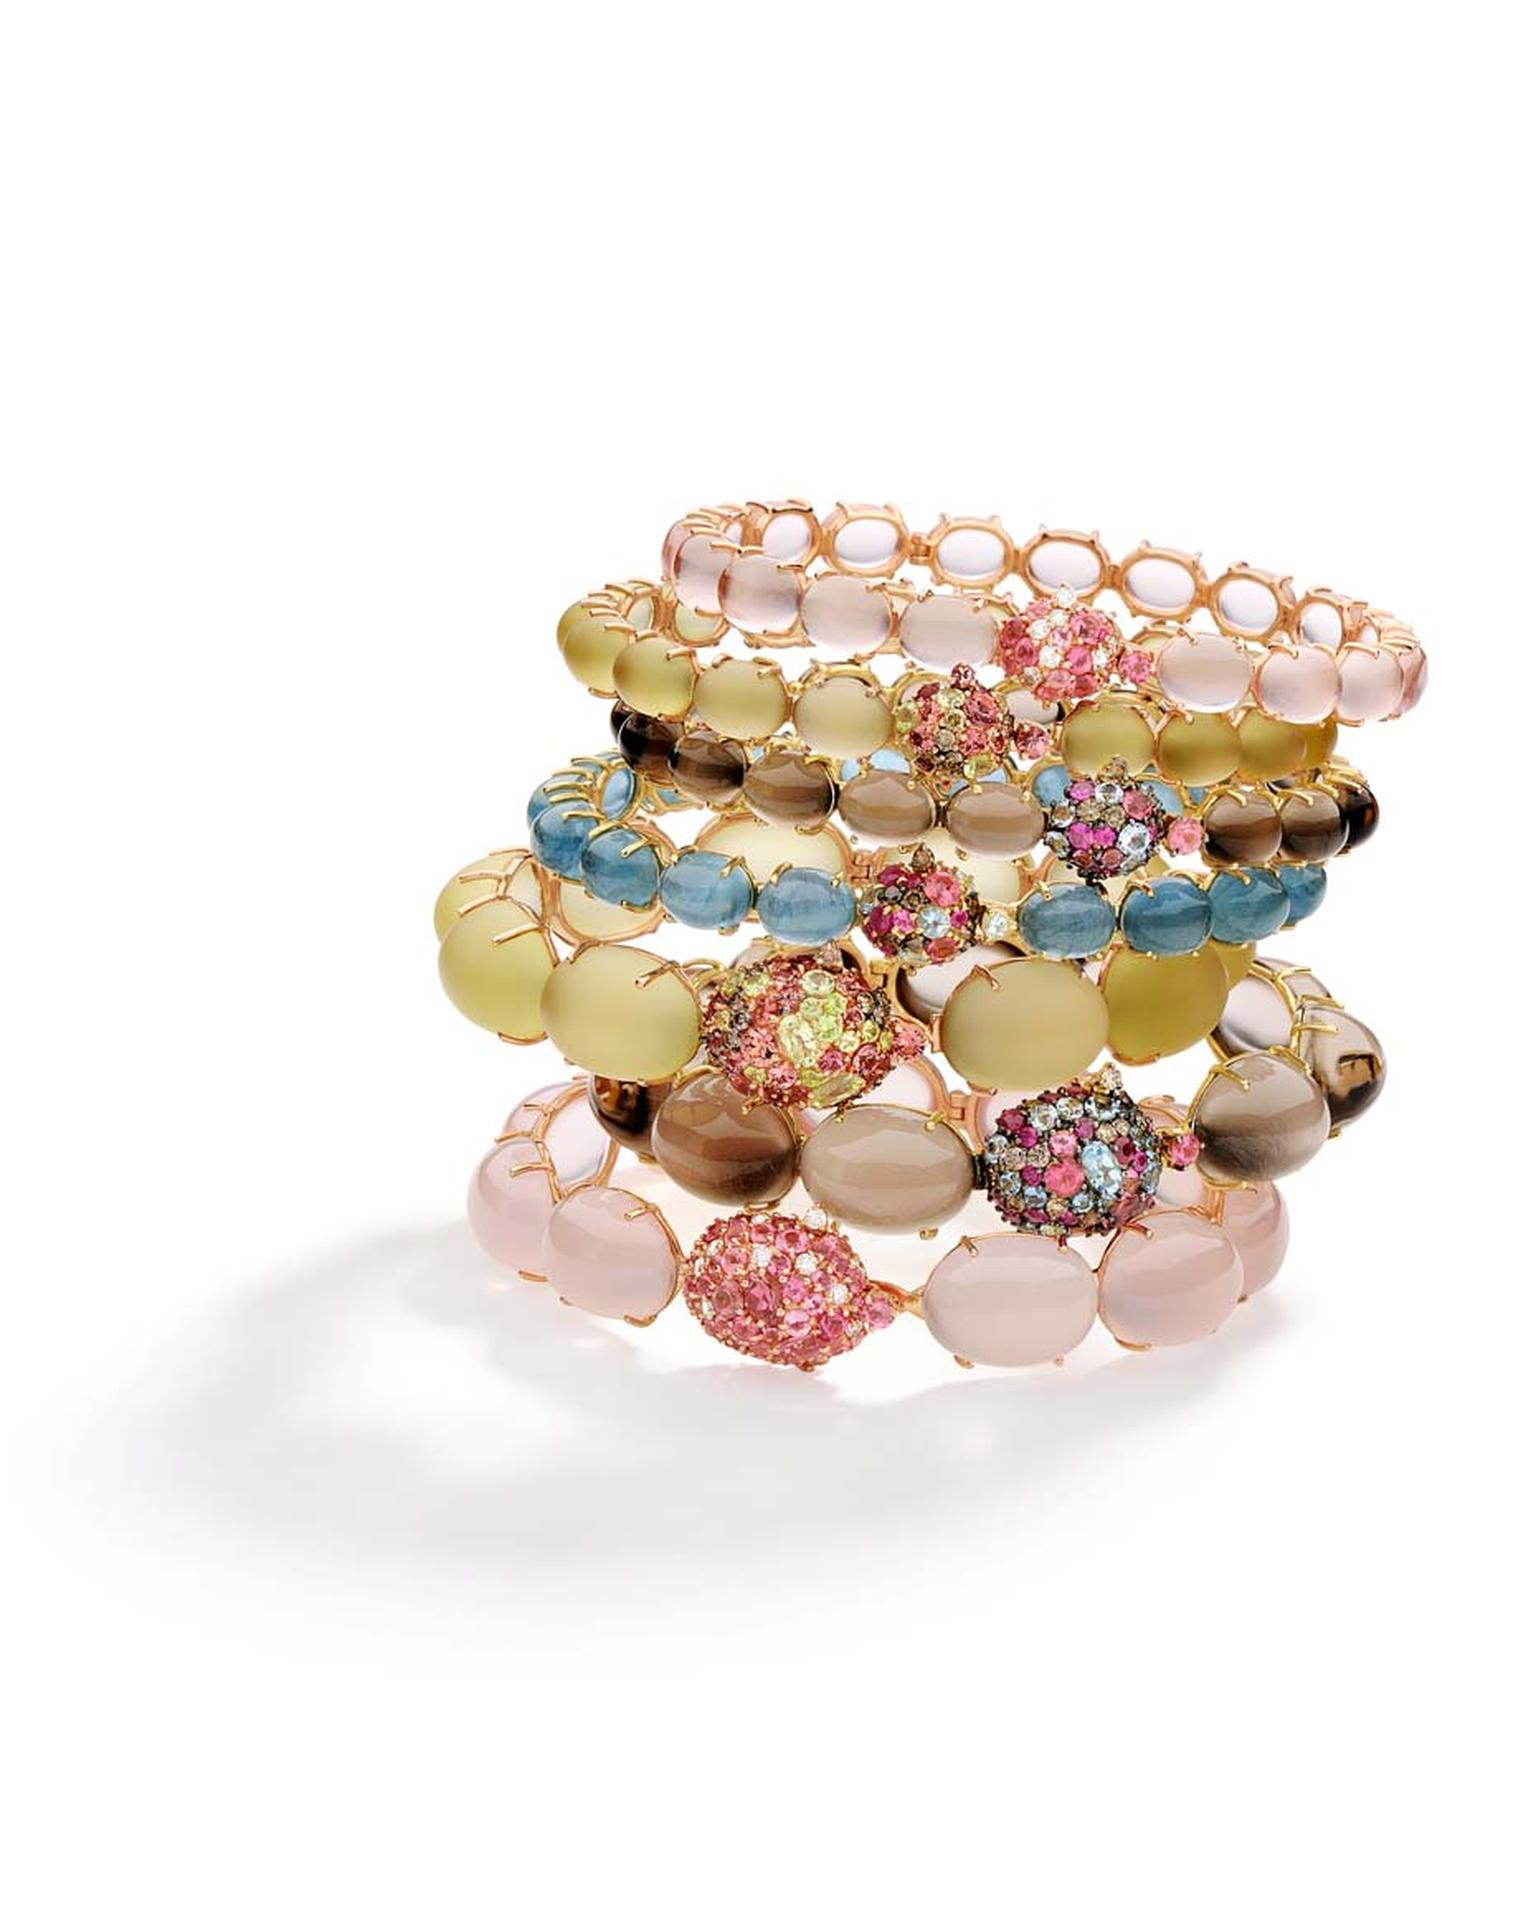 stacking pink mandarin upscale crop images rose gold brown tourmalines rubies smoky false baobab subsampling garnets yellow aquamarines with diamonds in brumani rings lemon white scale collection quartz and